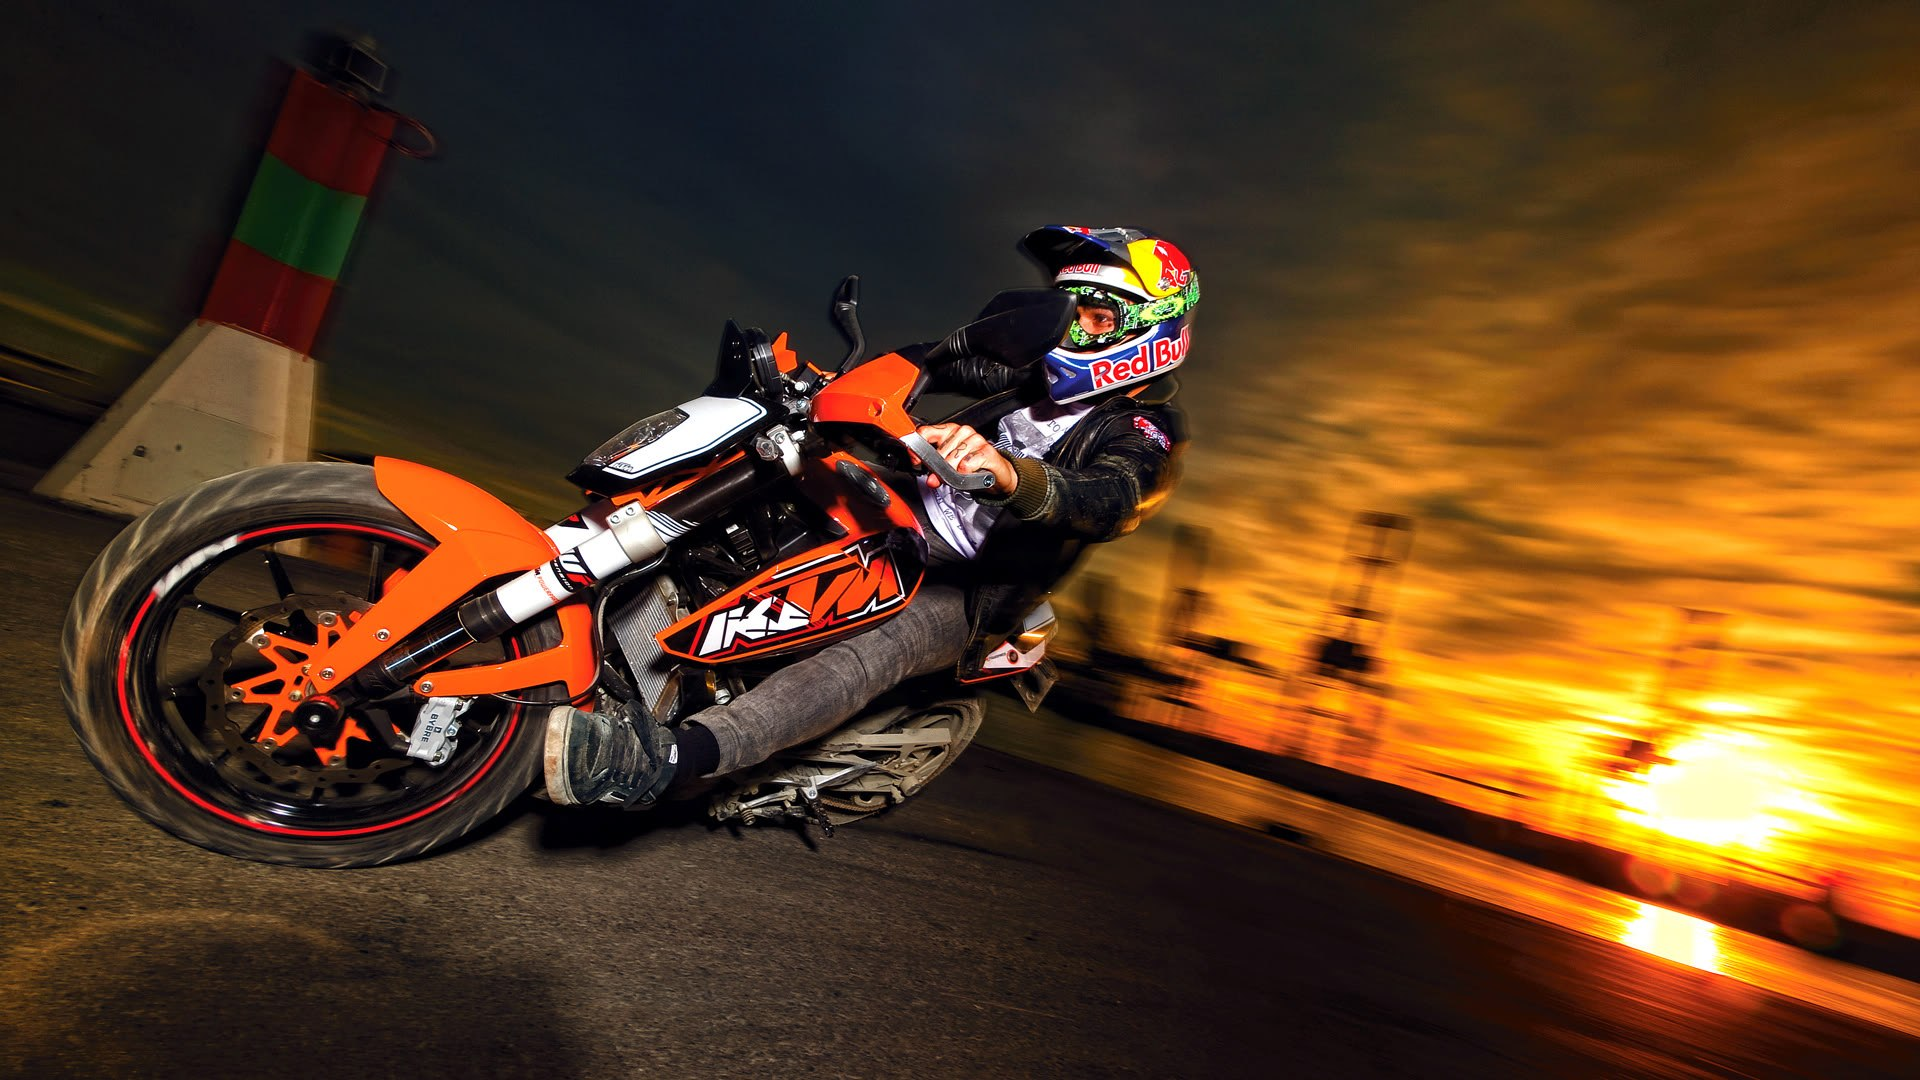 Bike KTM Duke Background Wallpaper HD 13 hd background hd screensavers 1920x1080